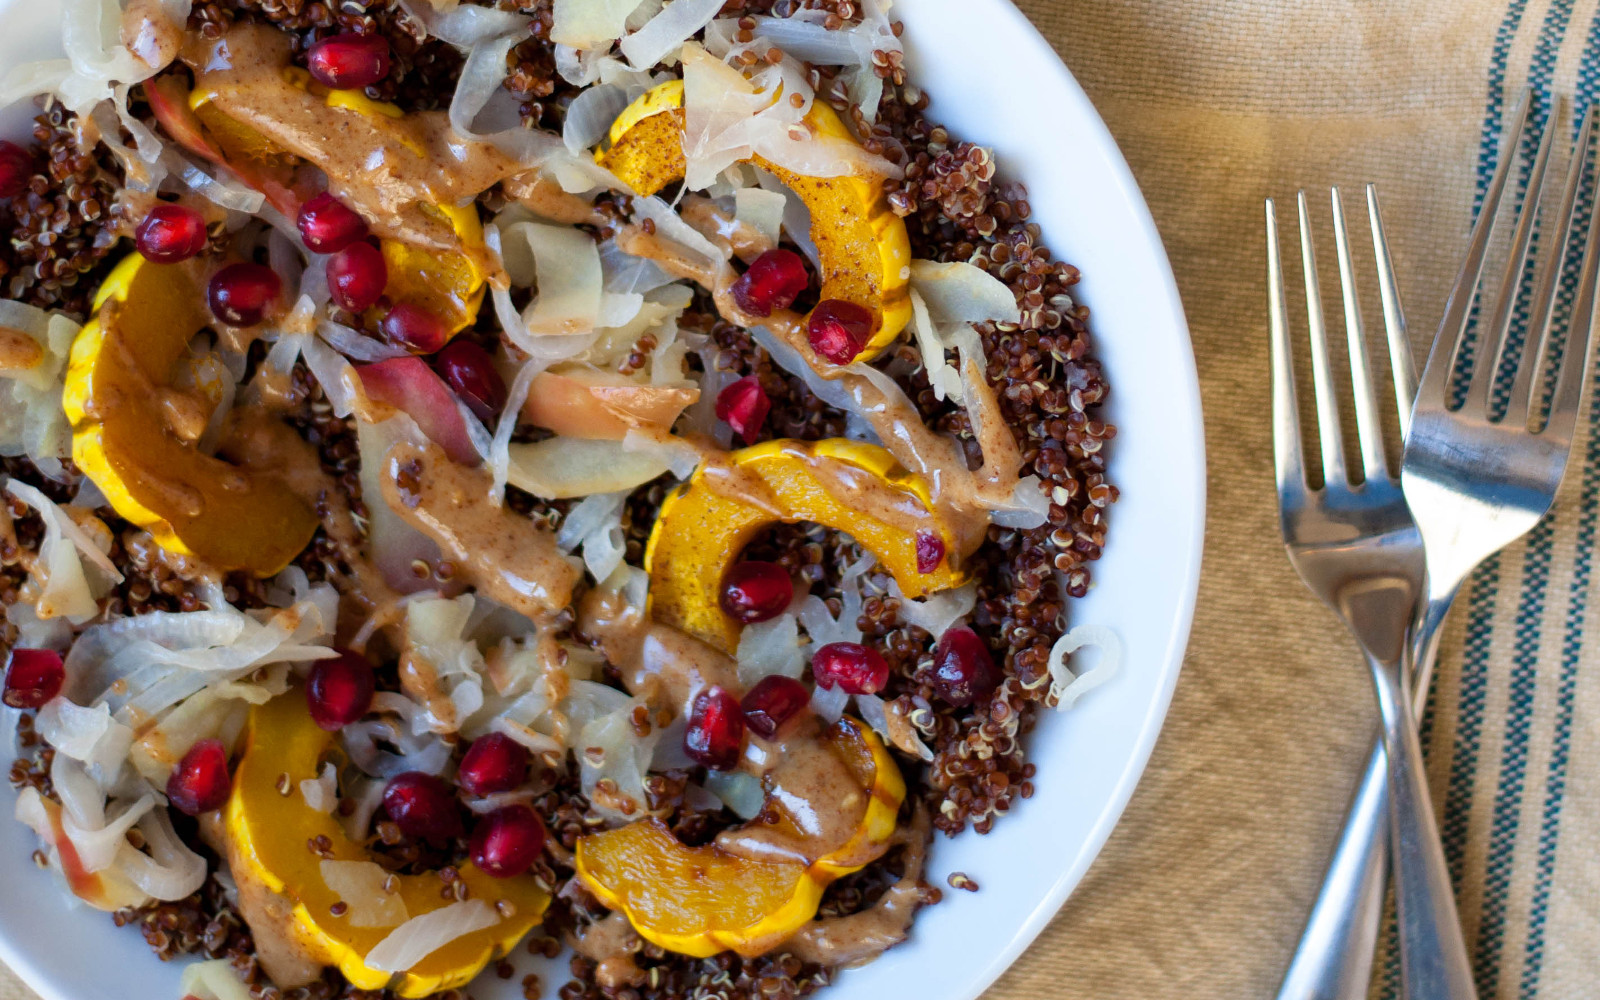 Toasted Quinoa Delicate Squash Bowls With Pickled Apples and Almond Butter Sauce